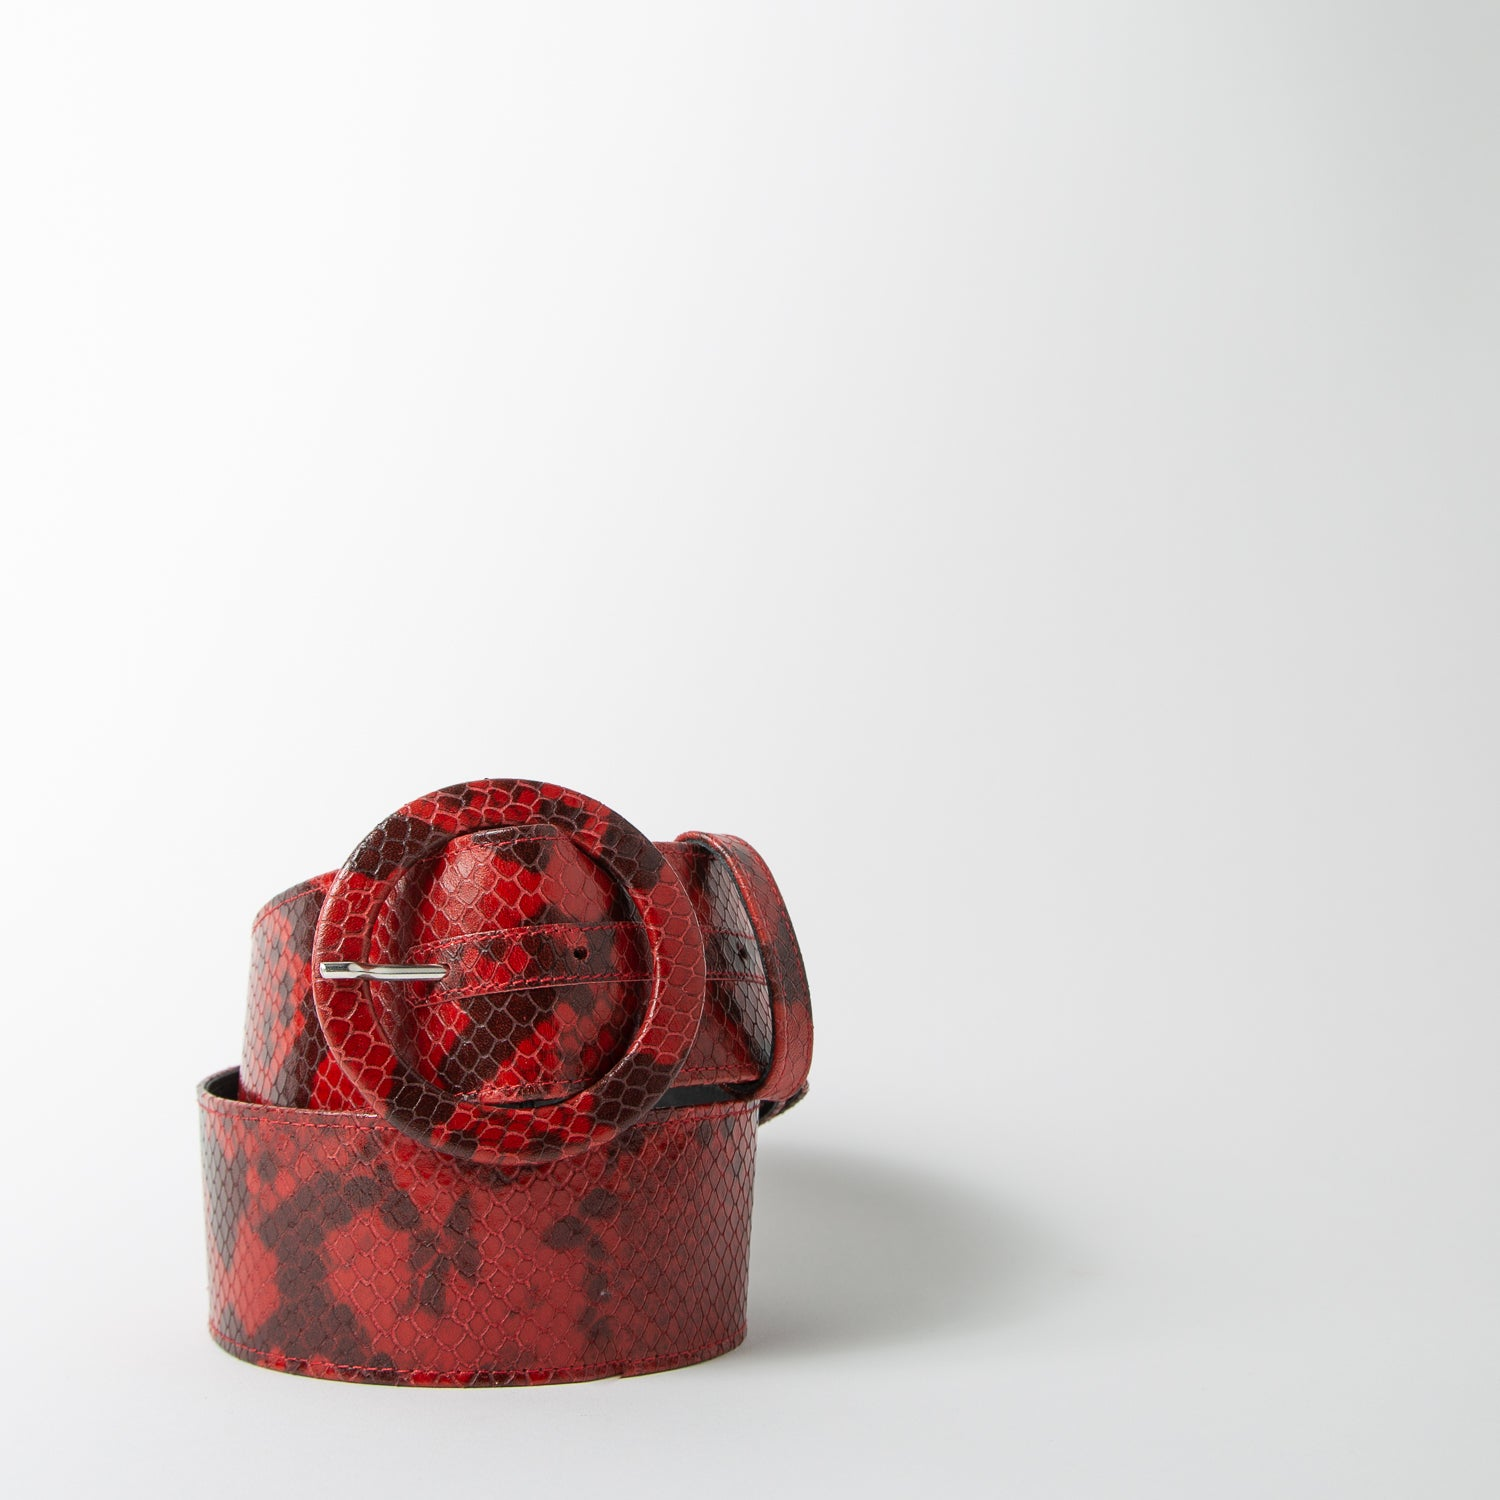 Snake printed belt in red by Attico at Secret Location Concept Store